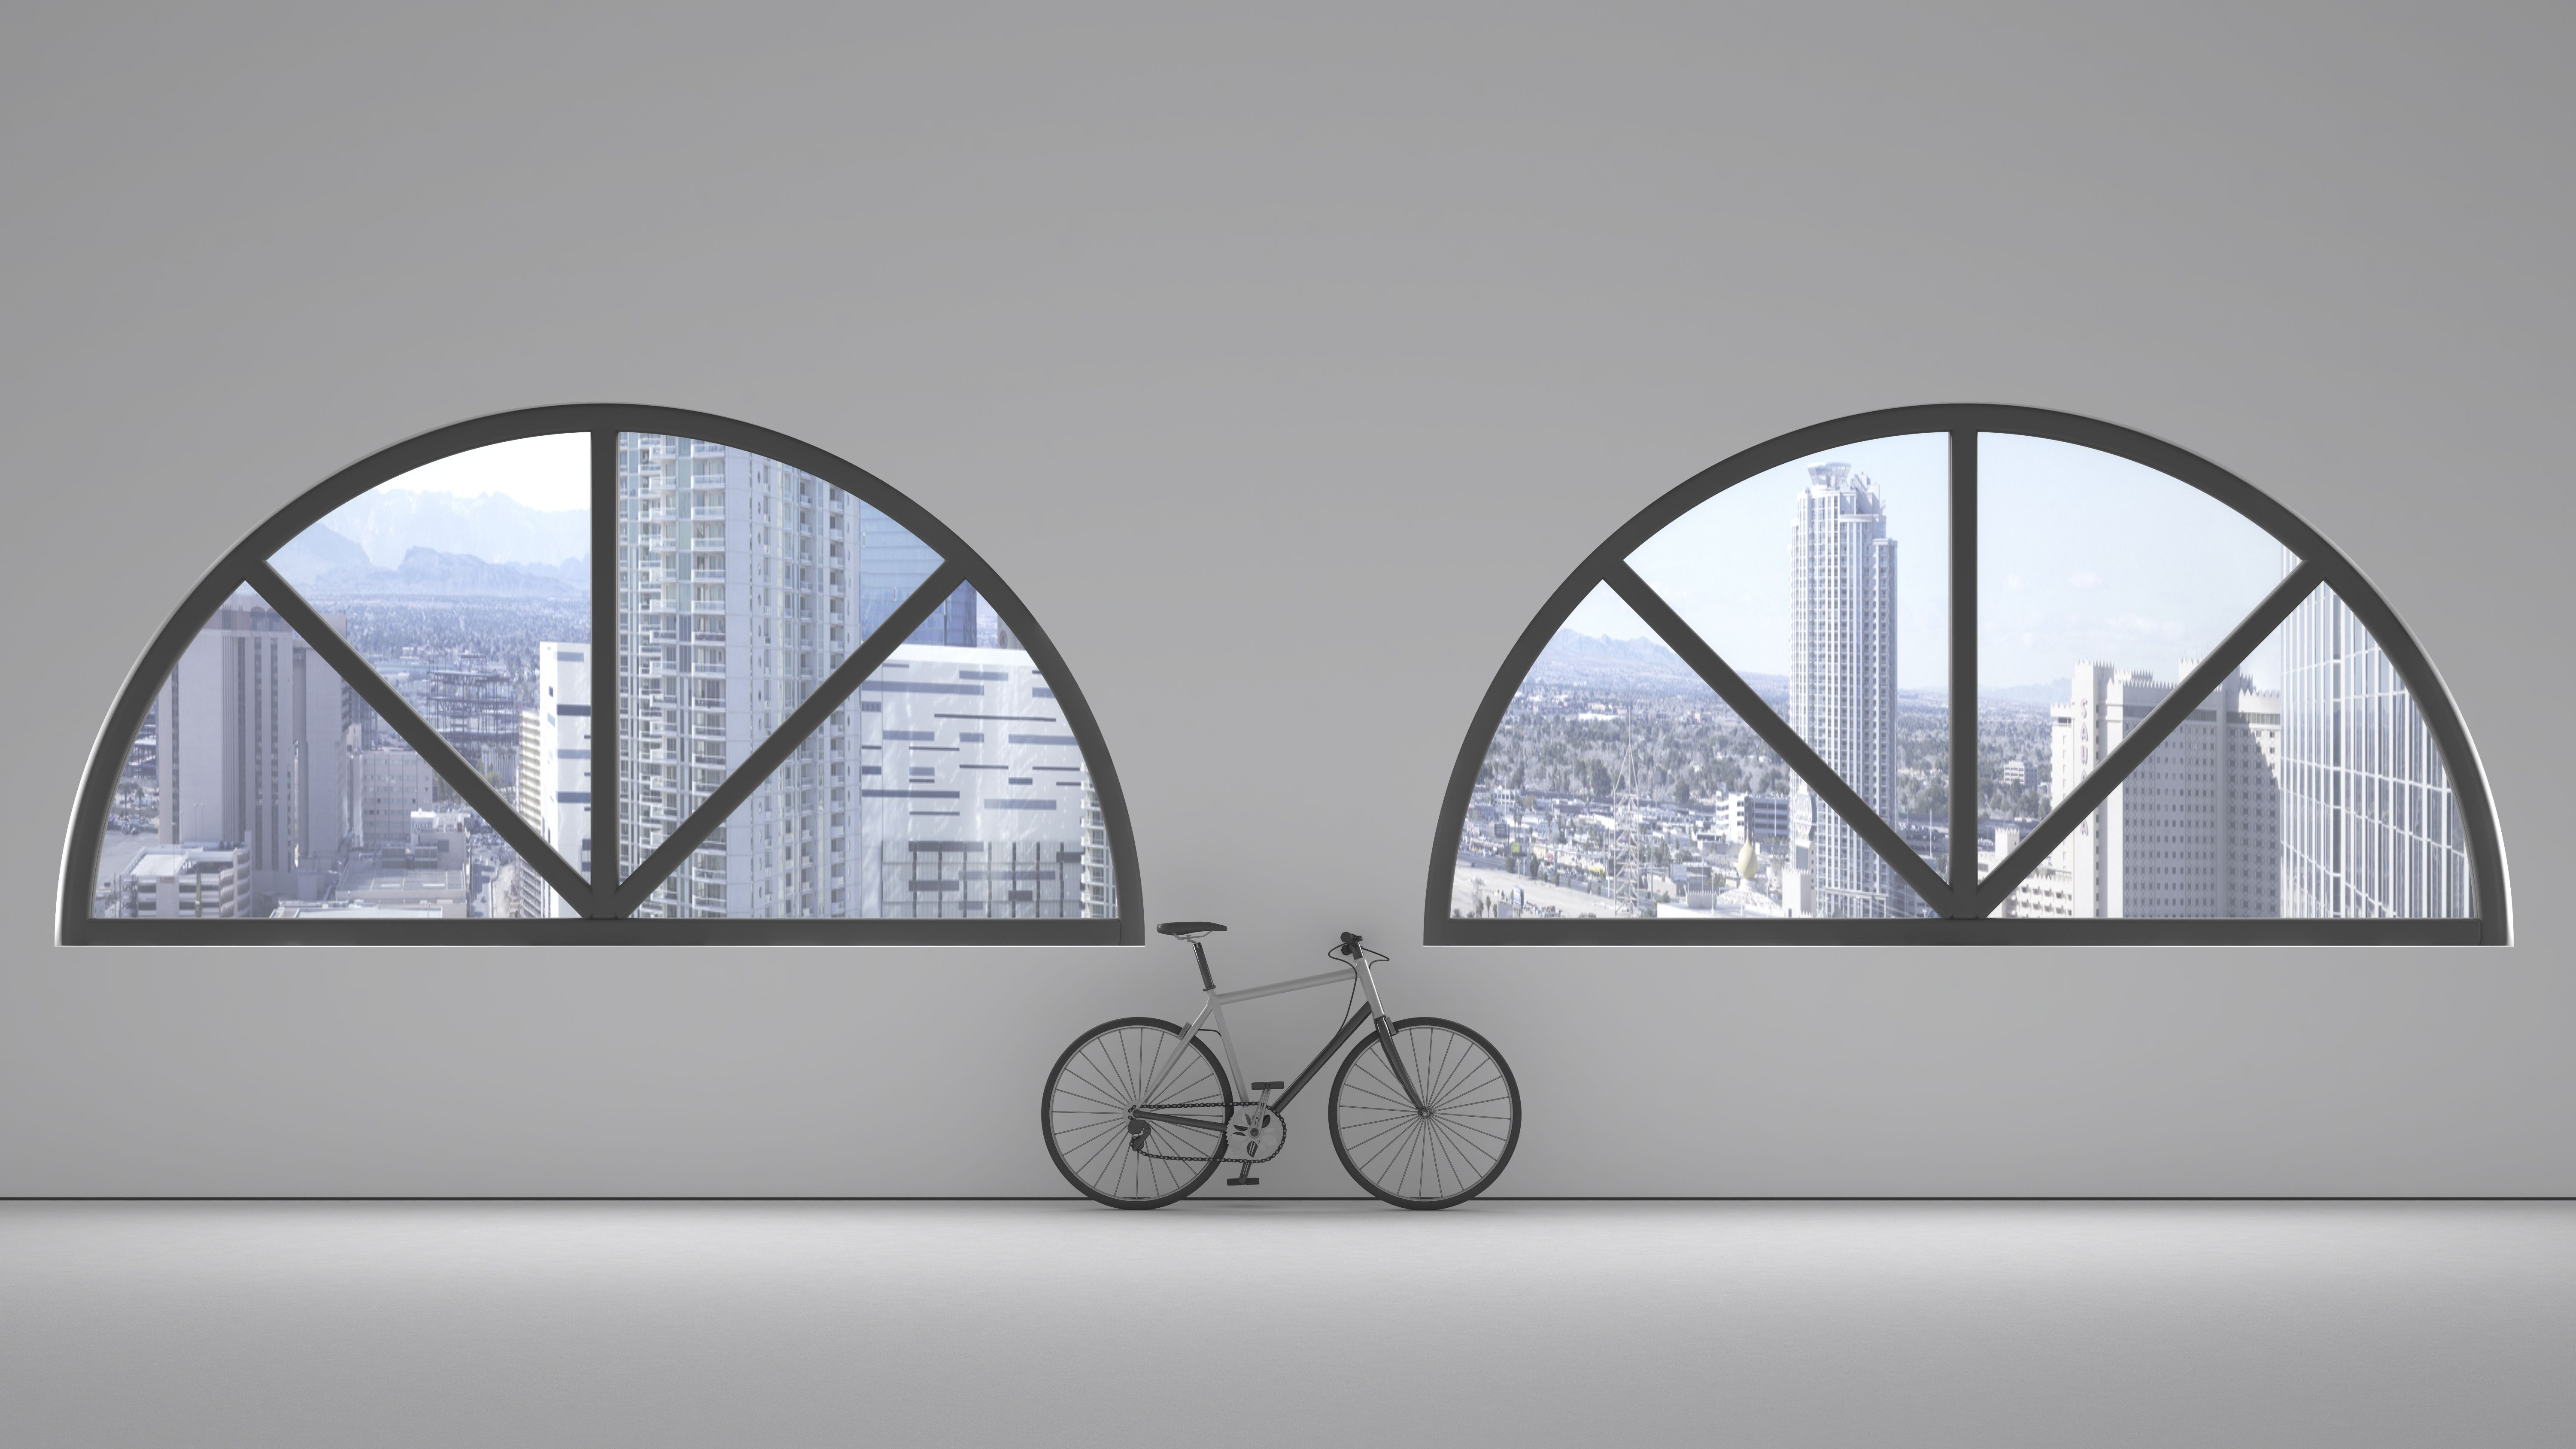 Loft with two round arch windows and bicycle leaning on the wall, 3D Rendering